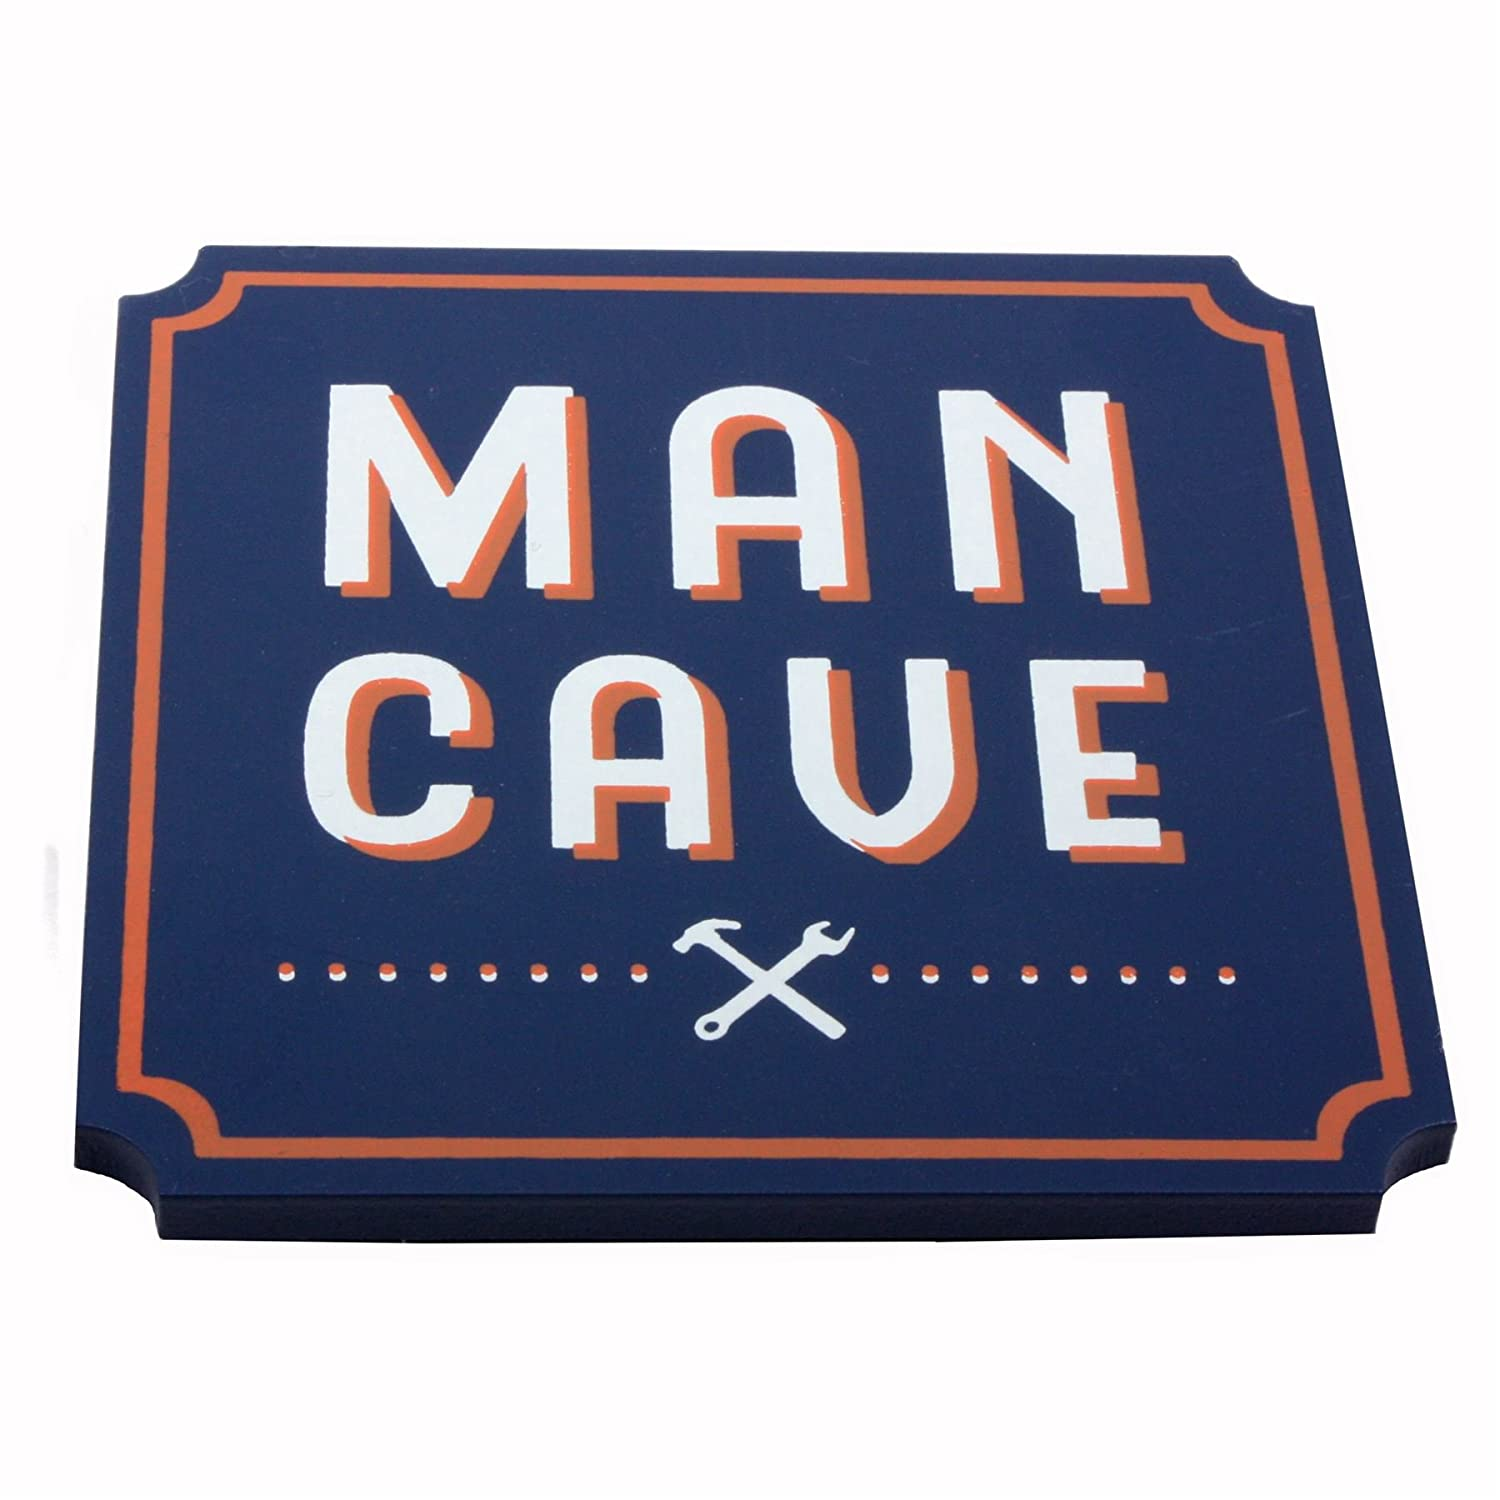 The Hardware Store木製コースター – Man Cave   B07CKXYD7P